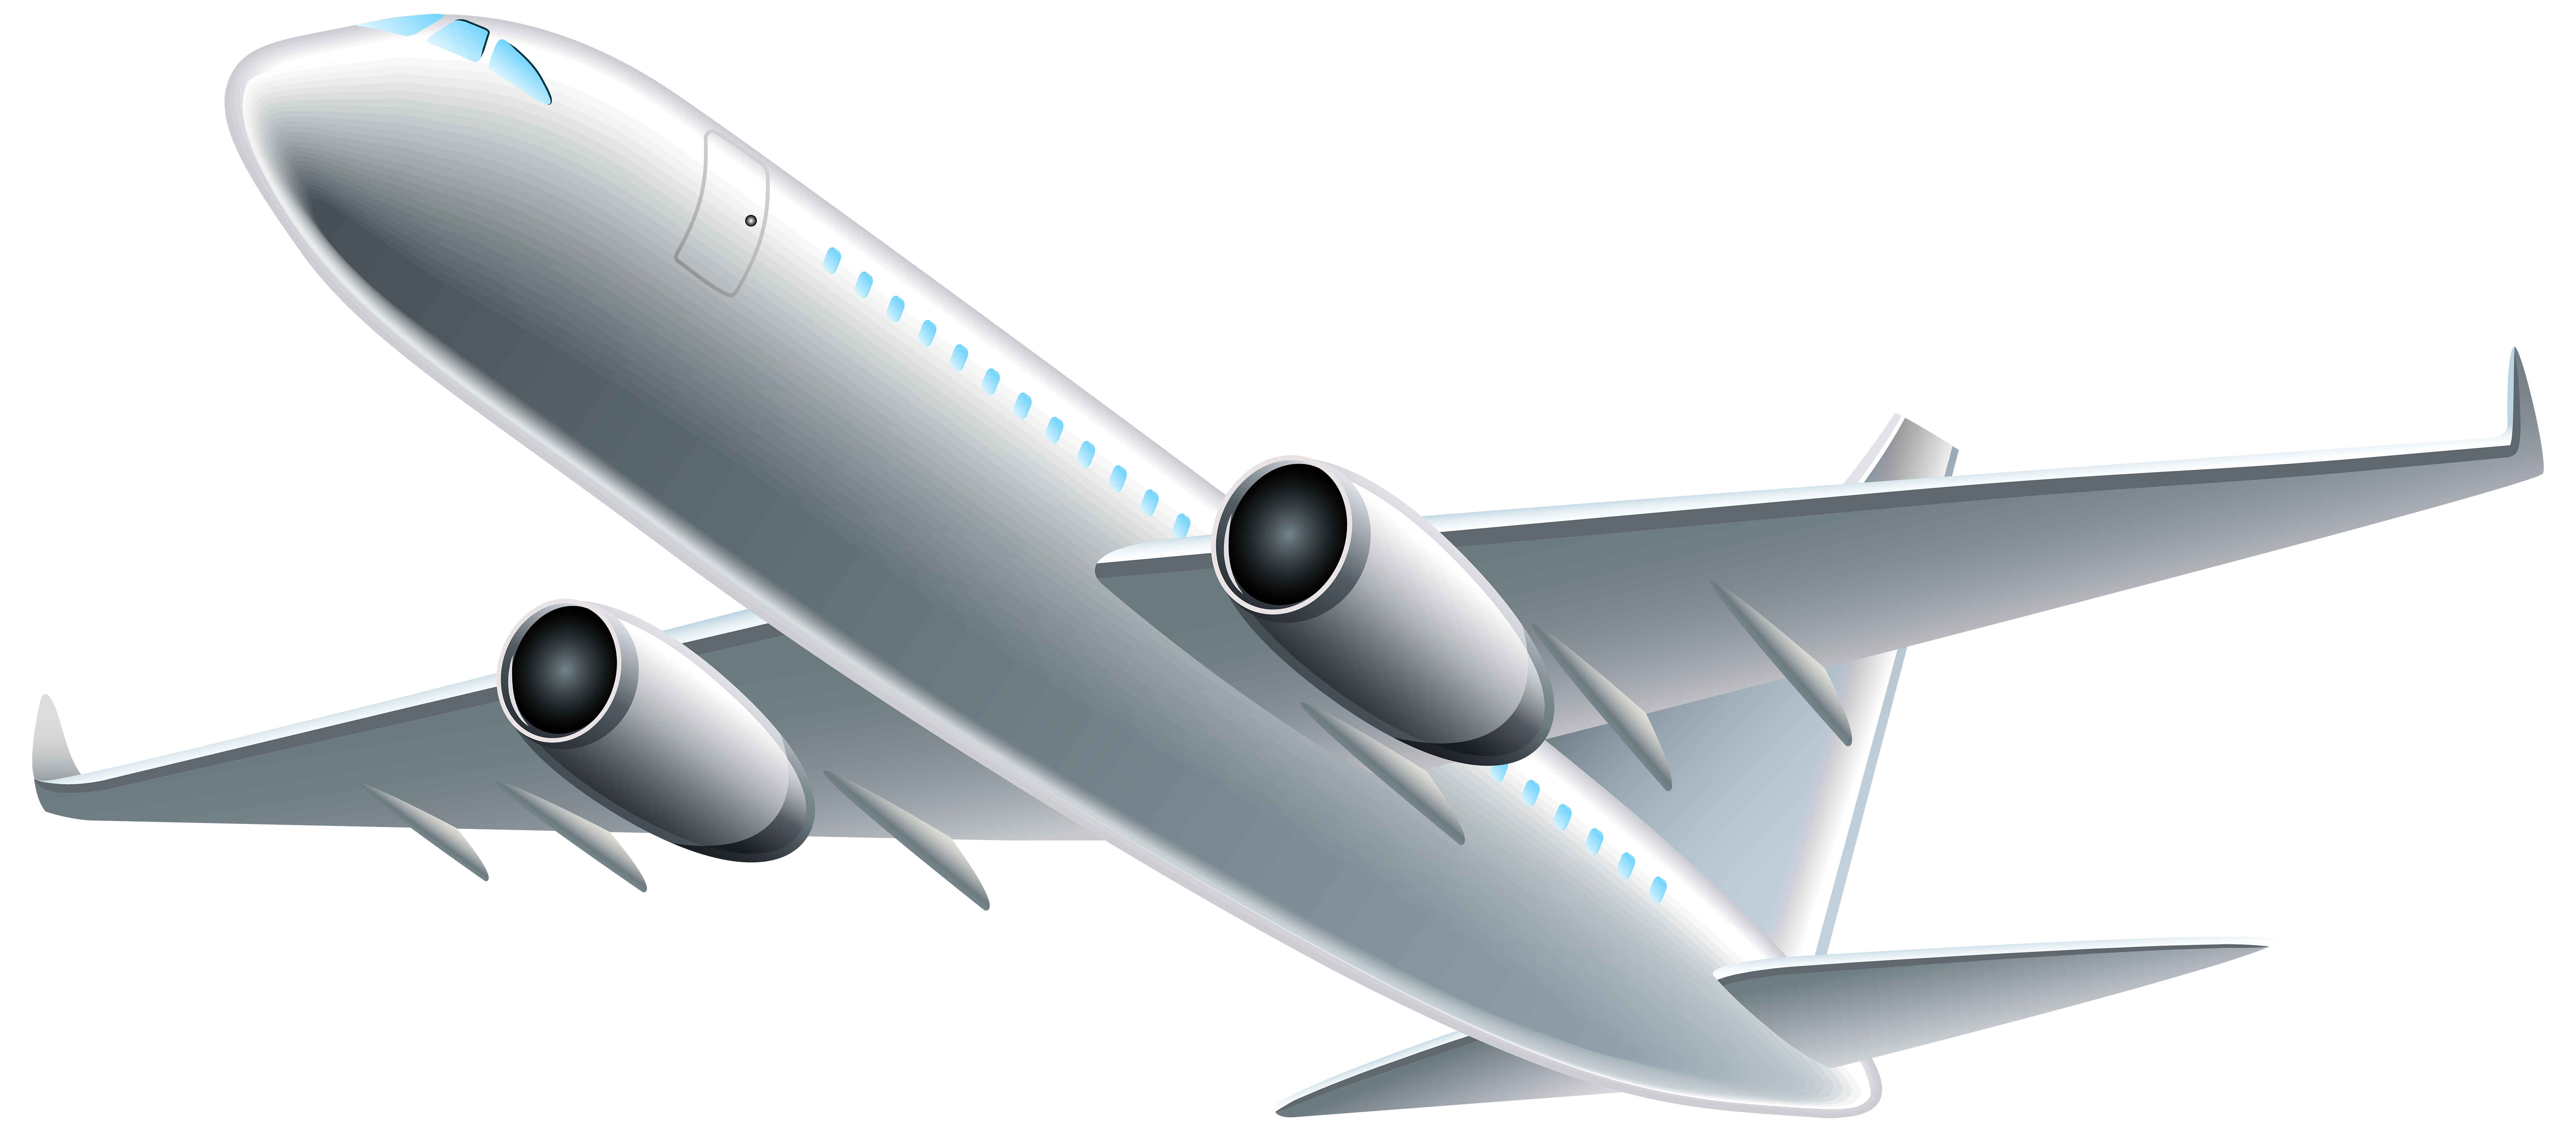 Clipart plane clear background. Airplane aircraft clip art